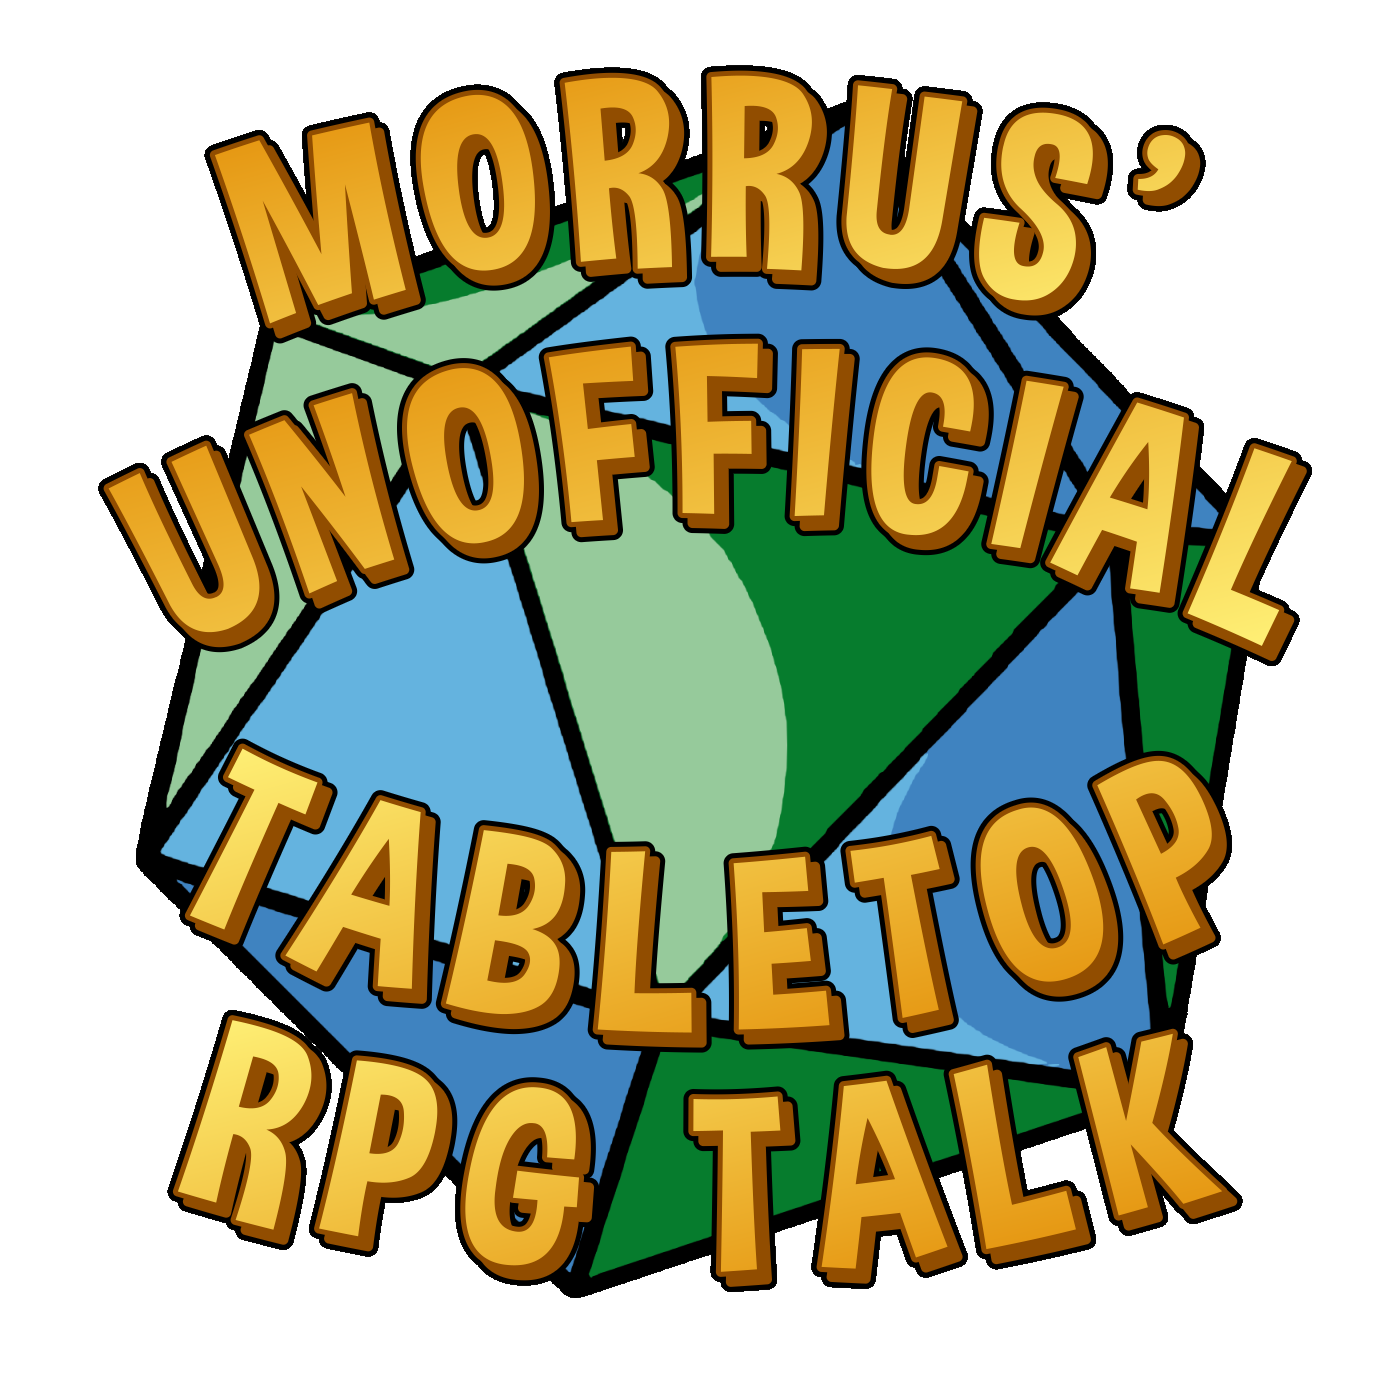 Games clipart table top. Morrus unofficial tabletop rpg